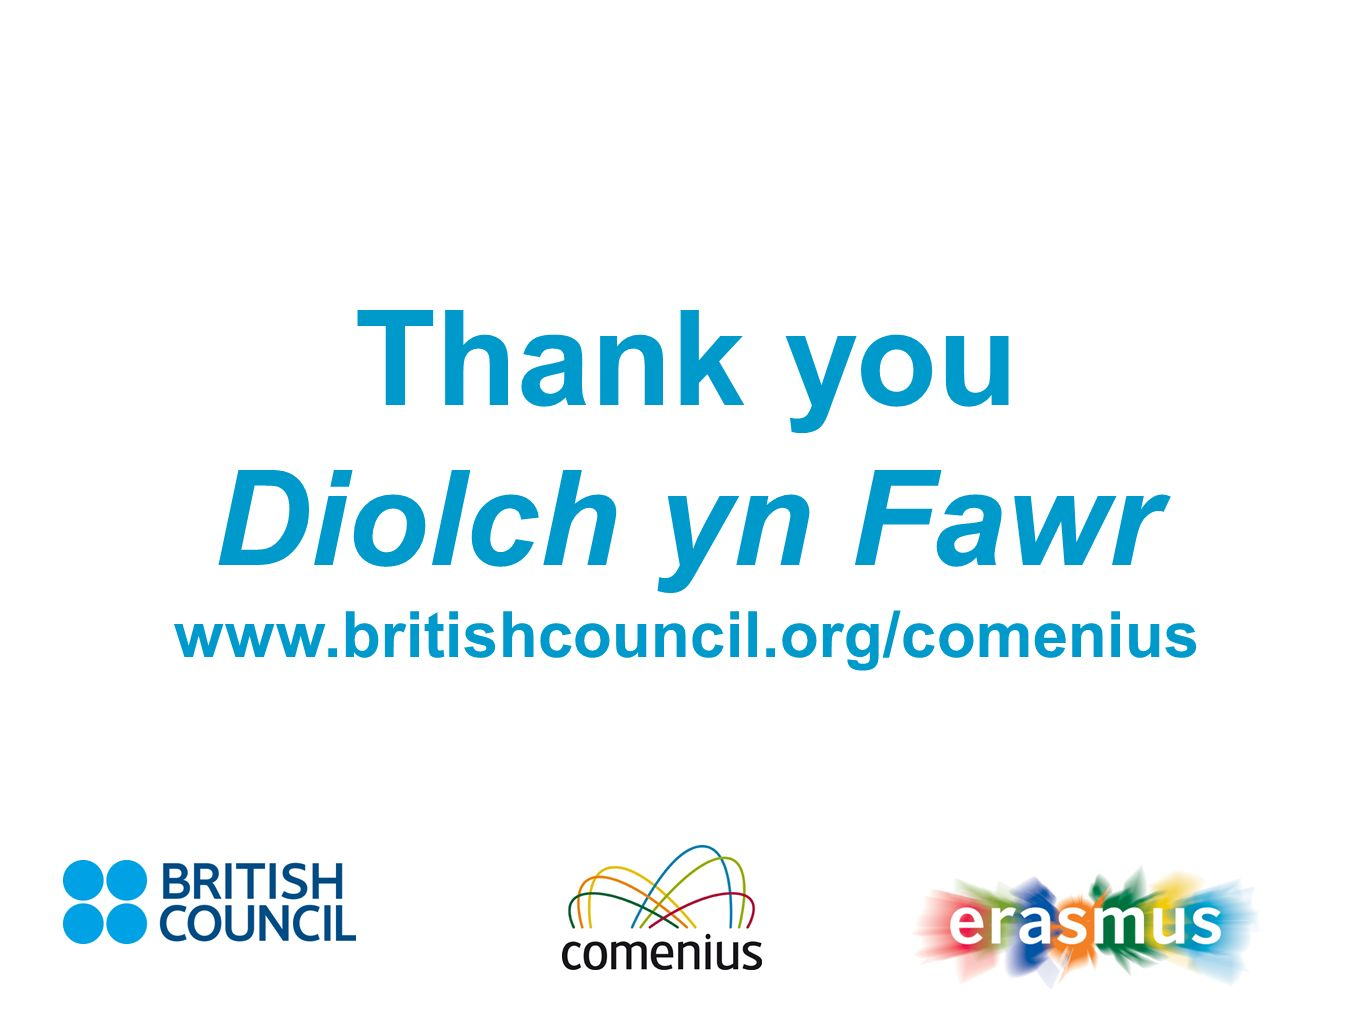 Thank you Diolch yn Fawr www.britishcouncil.org/comenius